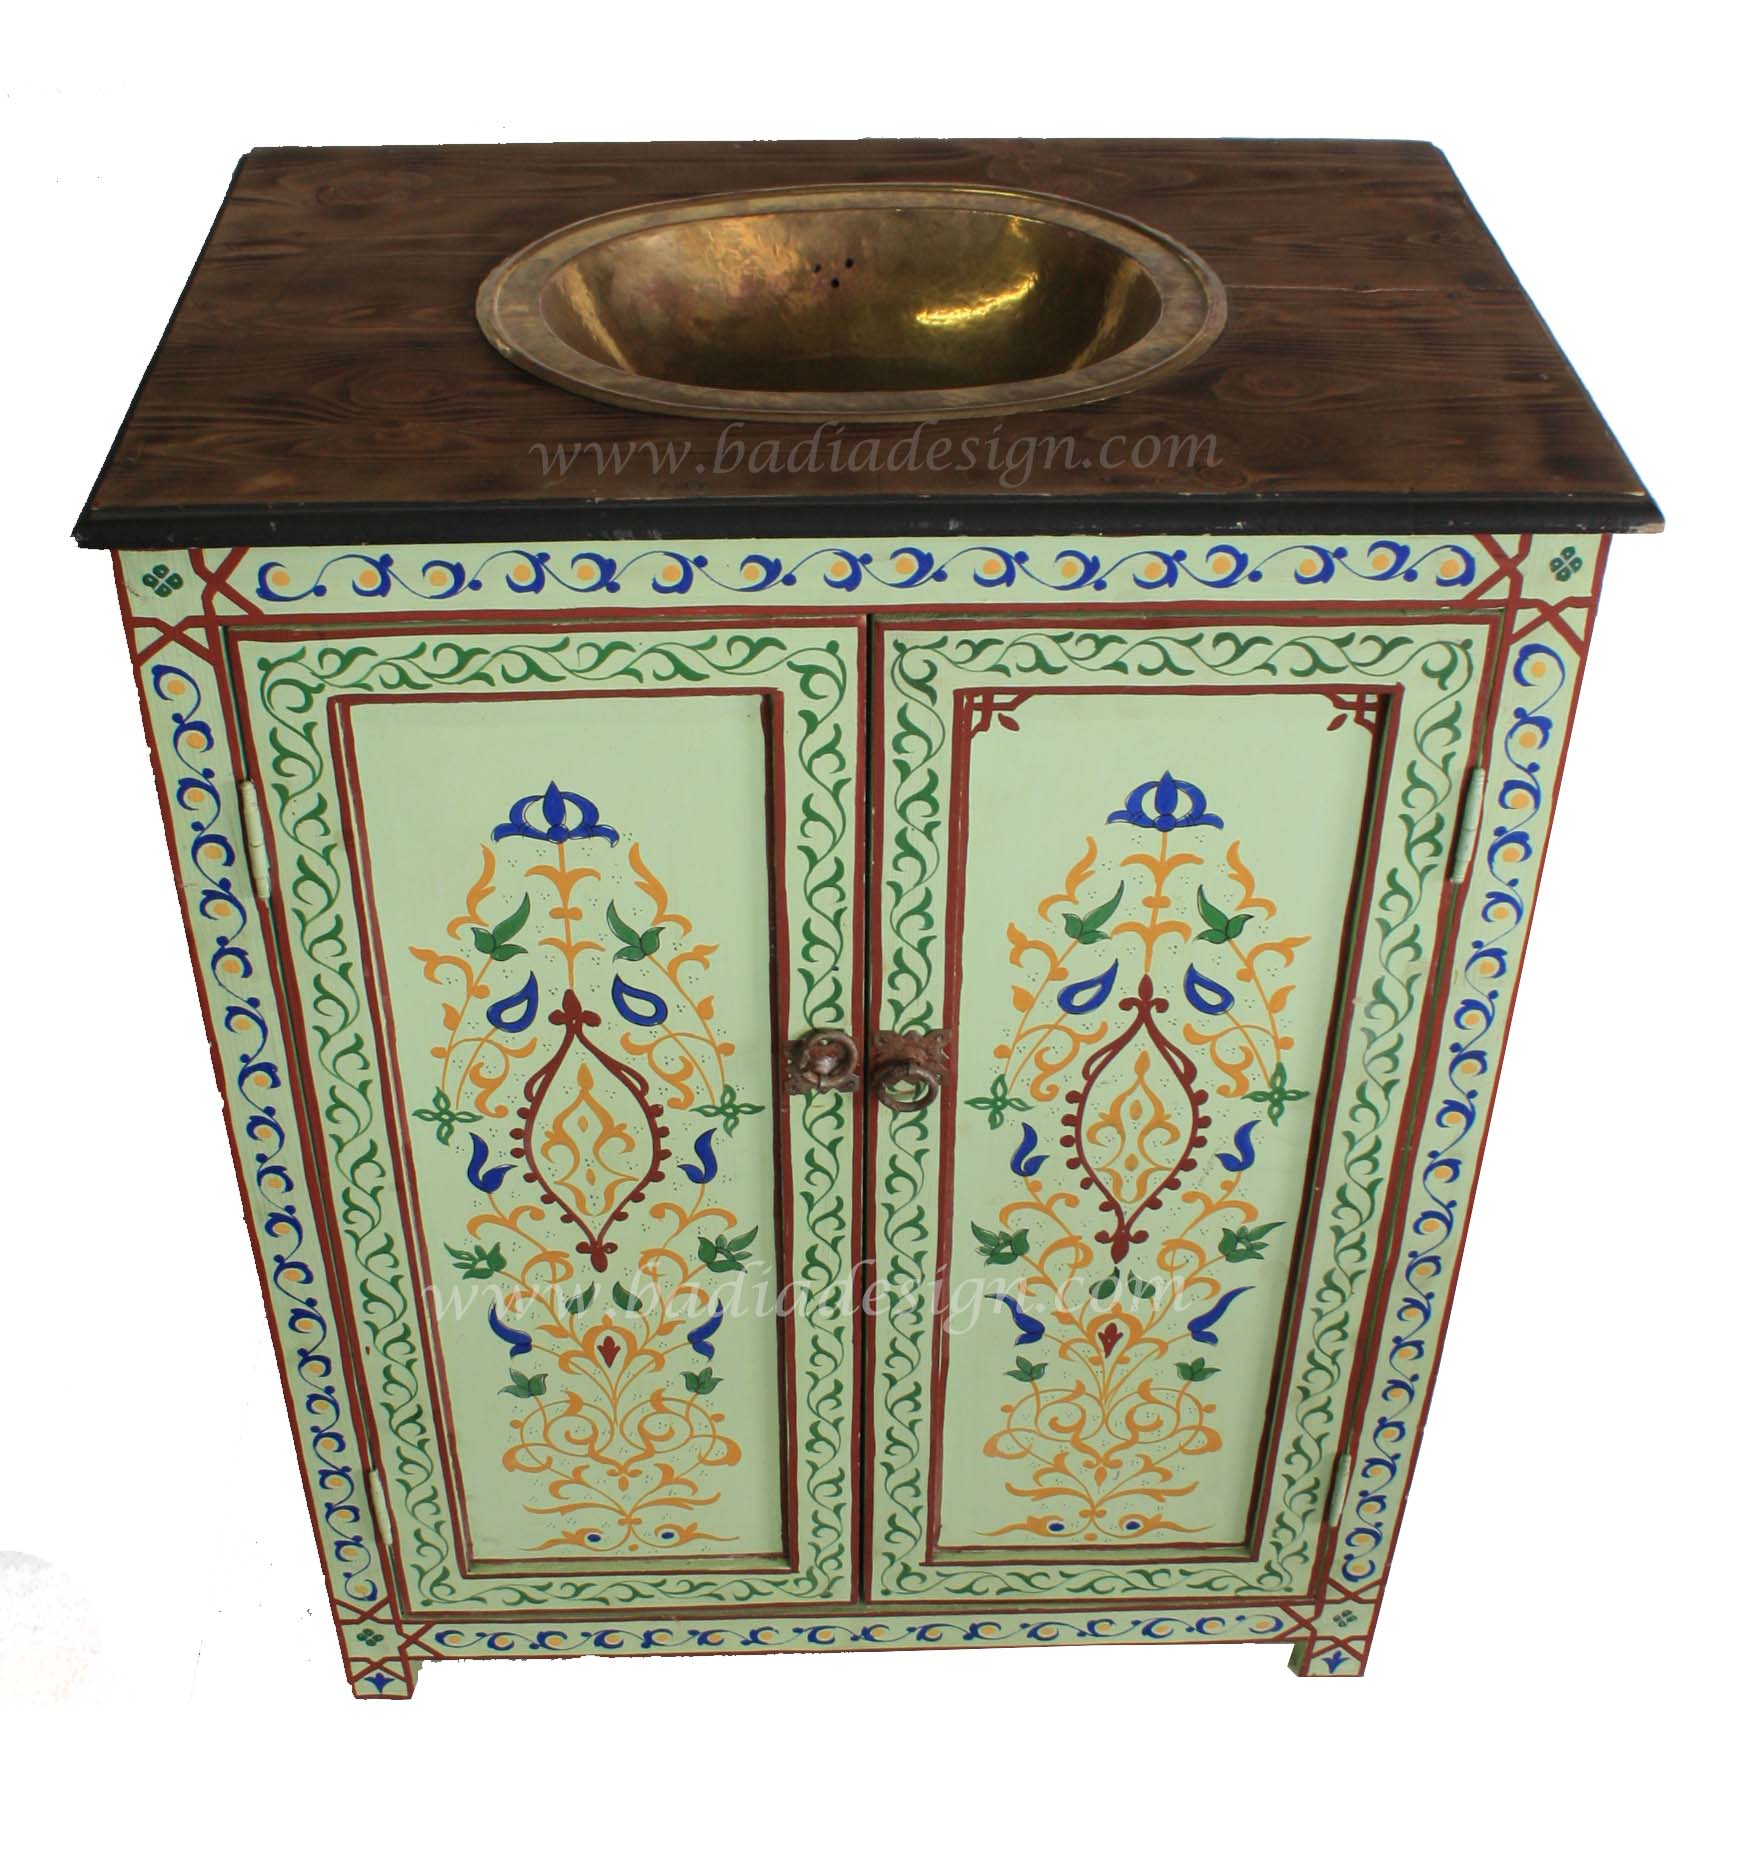 moroccan-hand-painted-wooden-vanity-with-sink-hp-ca033-2.jpg